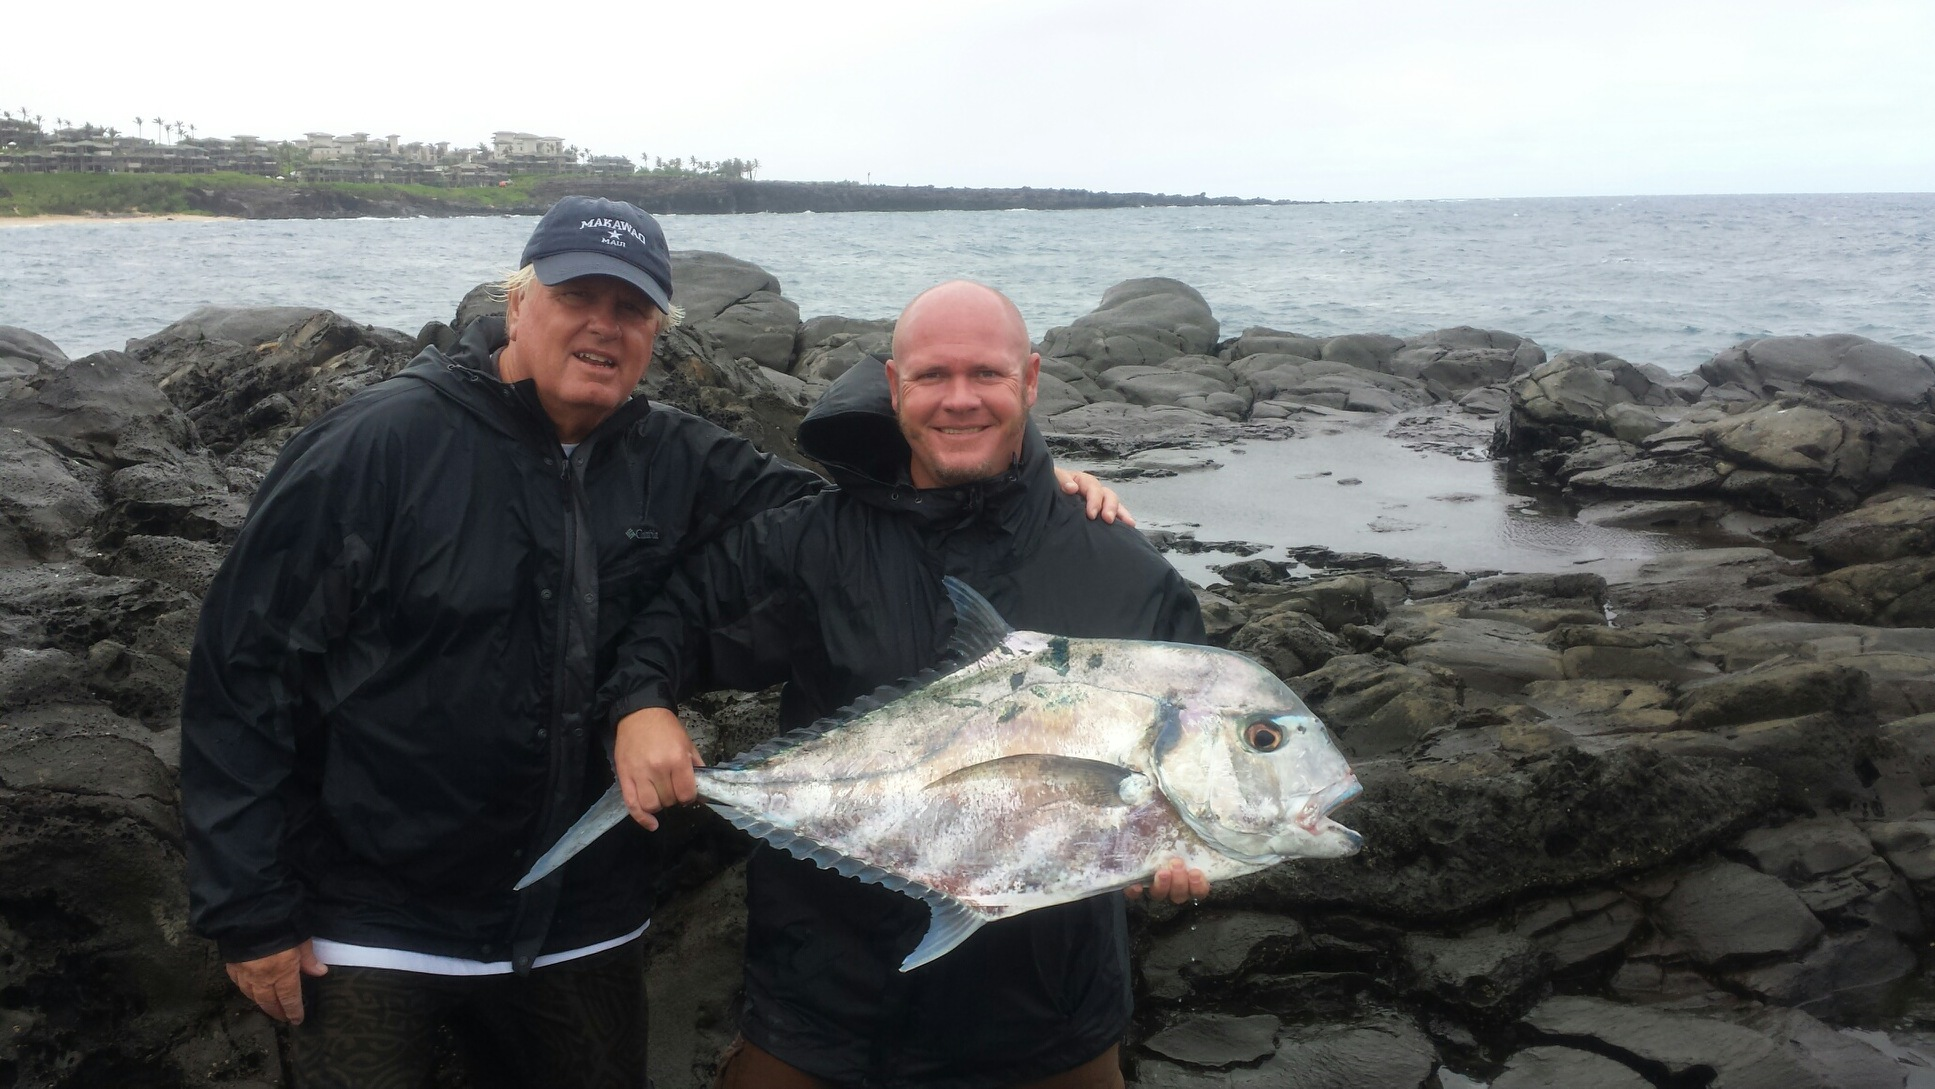 Maui shore fishing guides maui fishing tours maui for Maui fishing charter